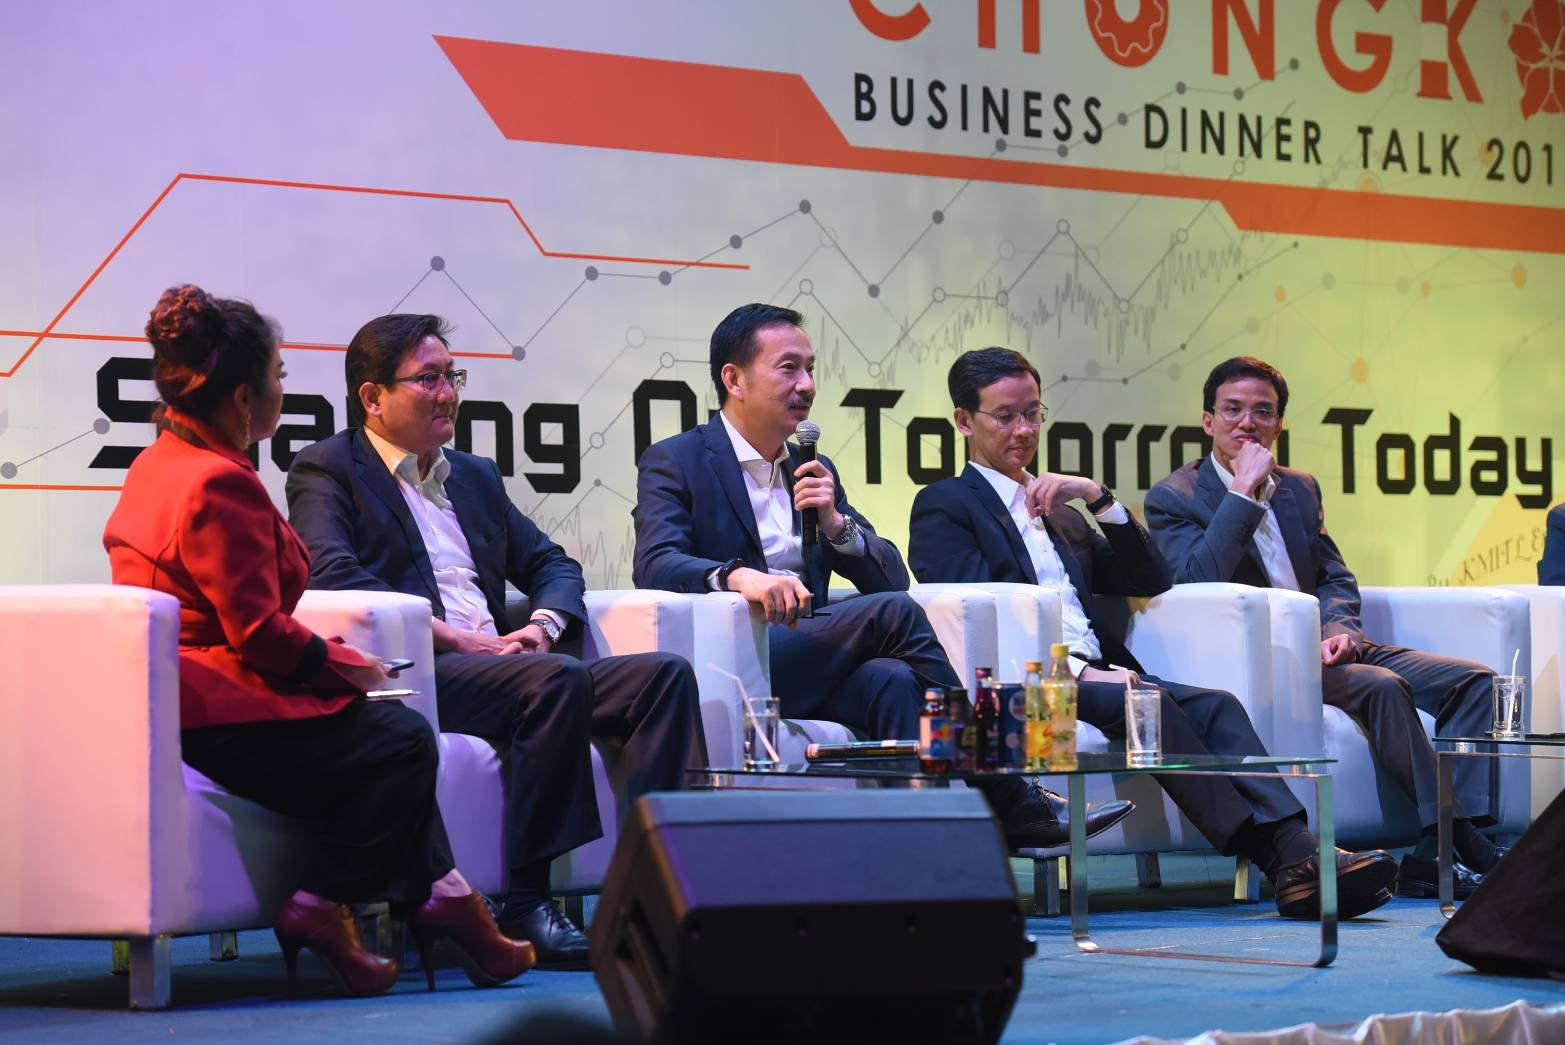 BCP CEO joins Chongko Business Dinner Talk 2018